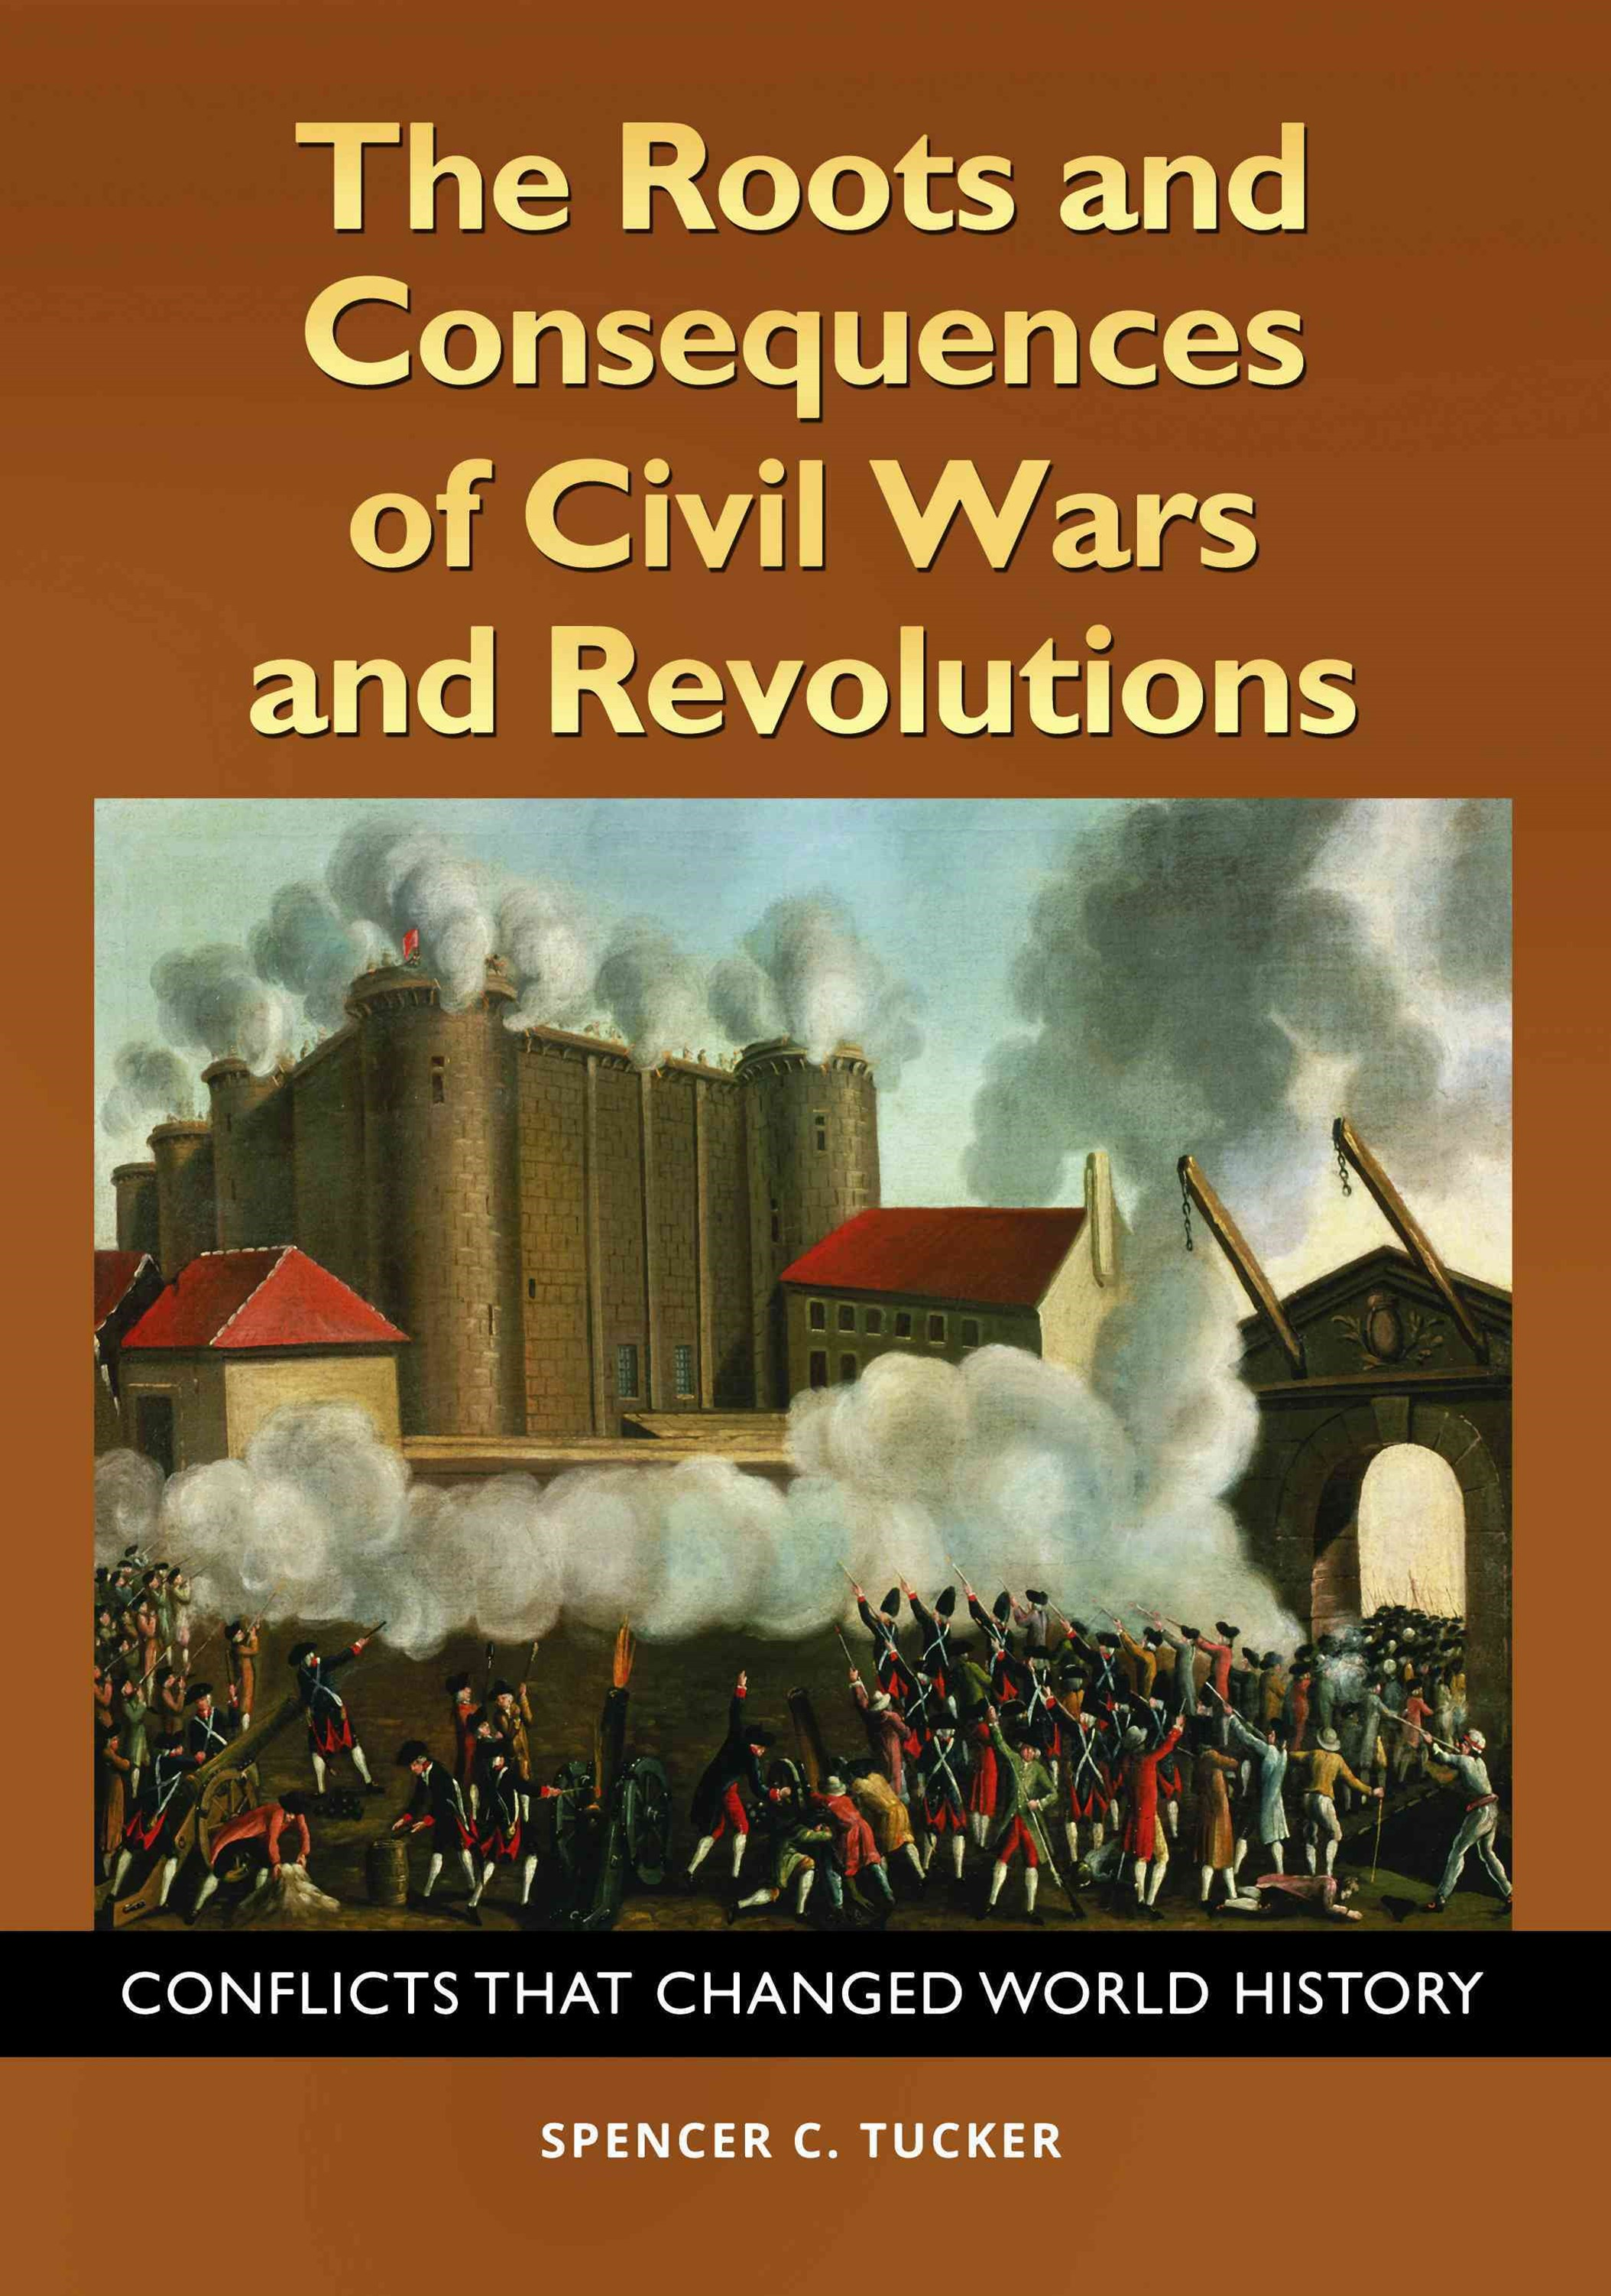 The Roots and Consequences of Civil Wars and Revolutions